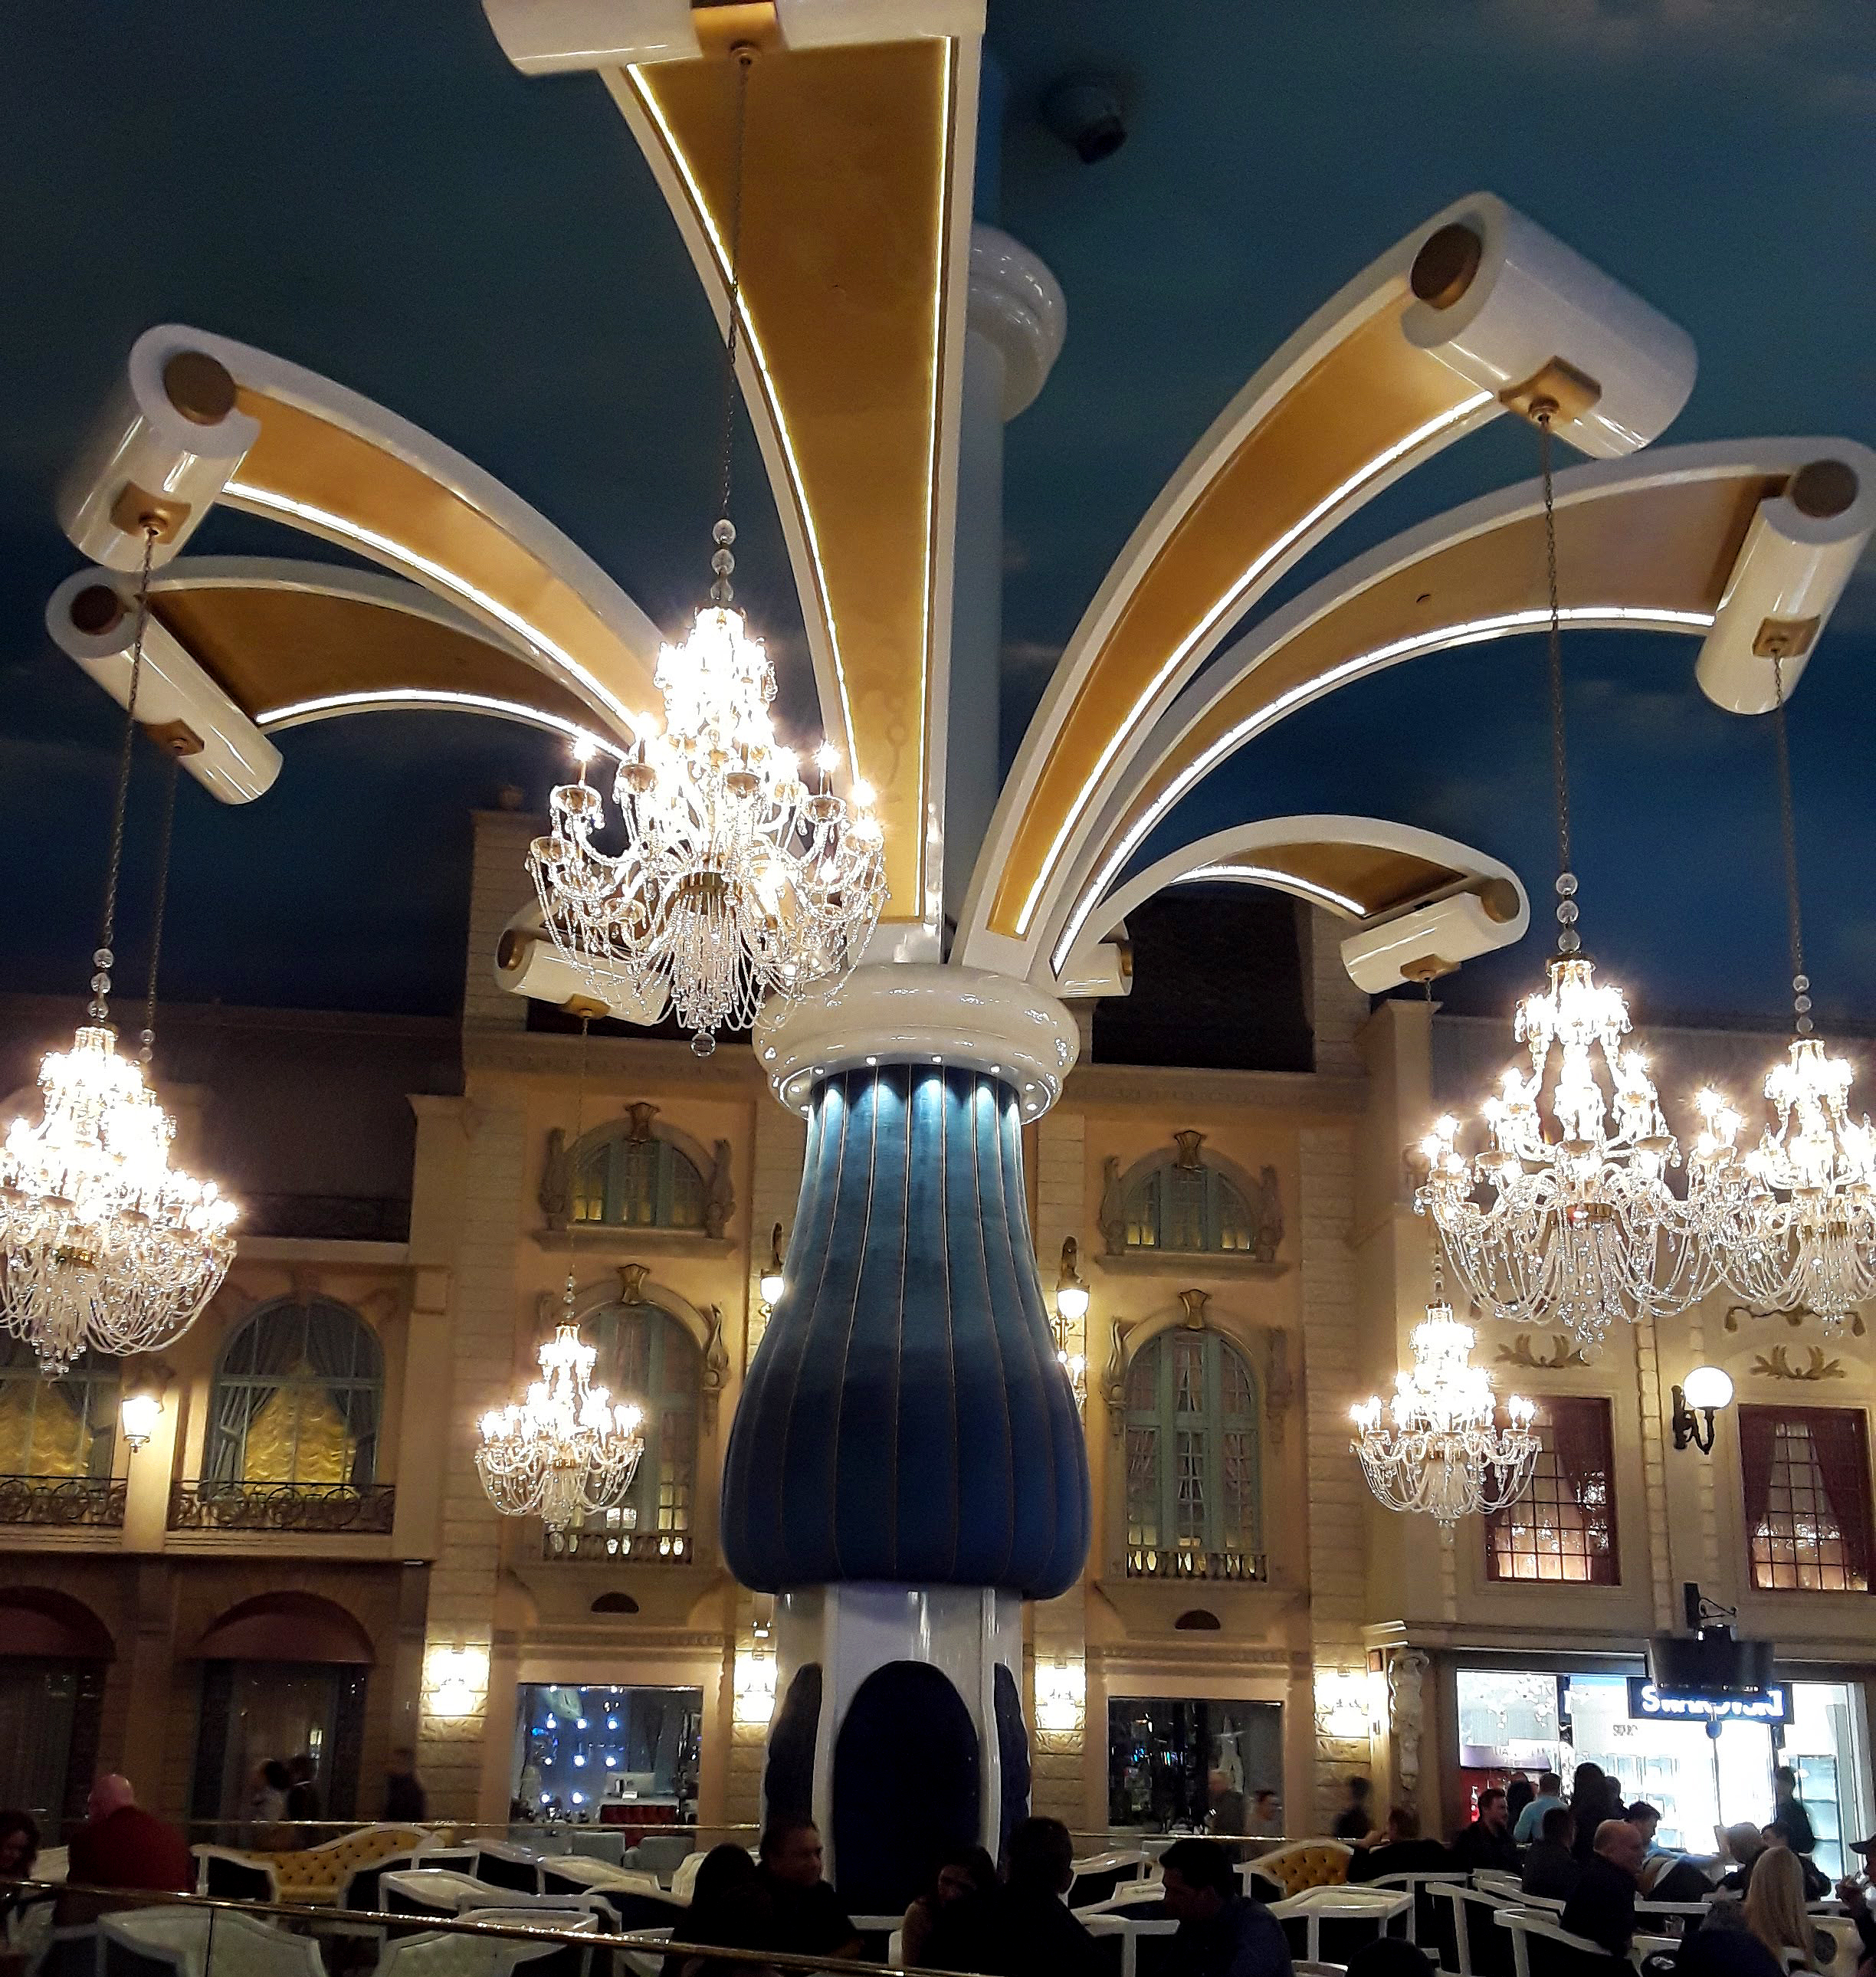 REVIEW Paris Hotel Las Vegas NV –